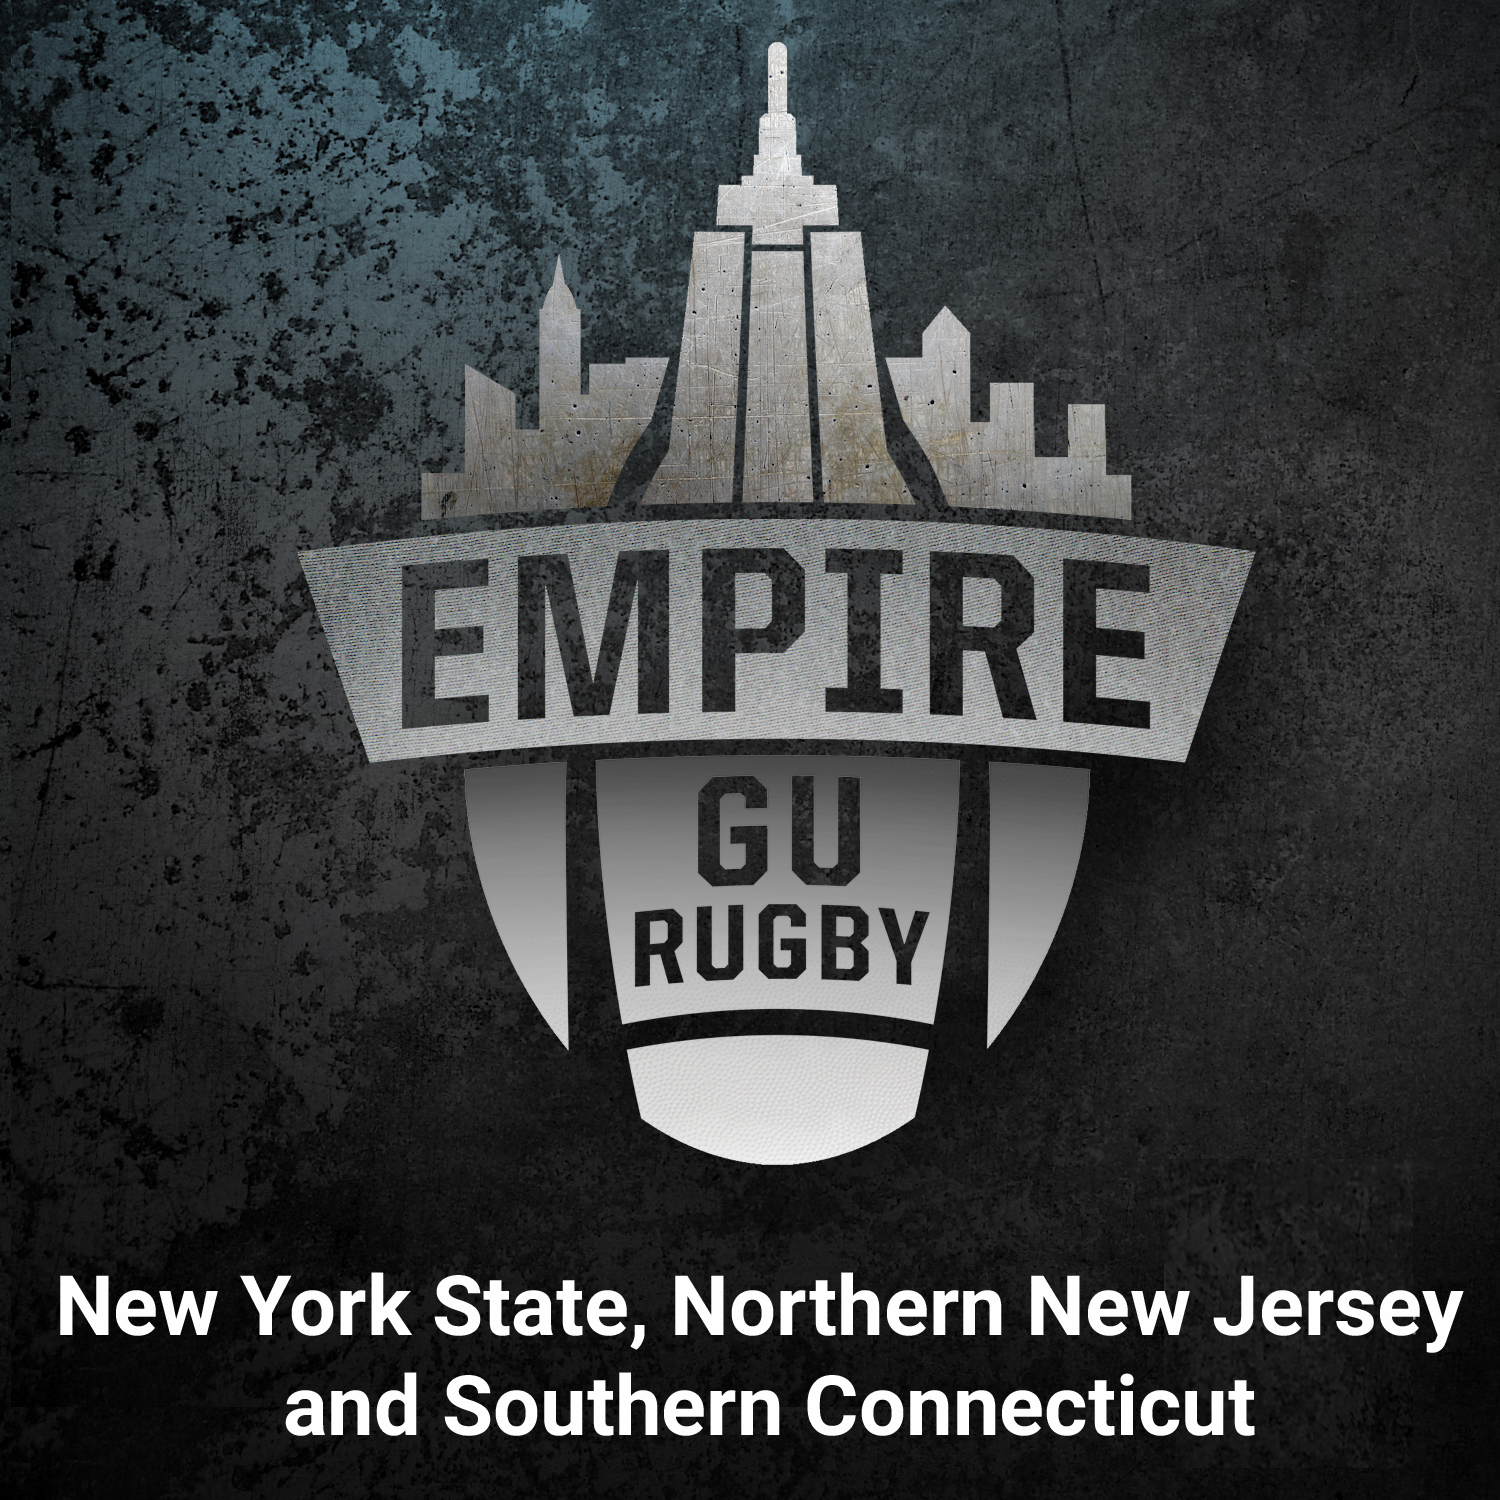 New York State, Northern New Jersey, South Connecticut Rugby